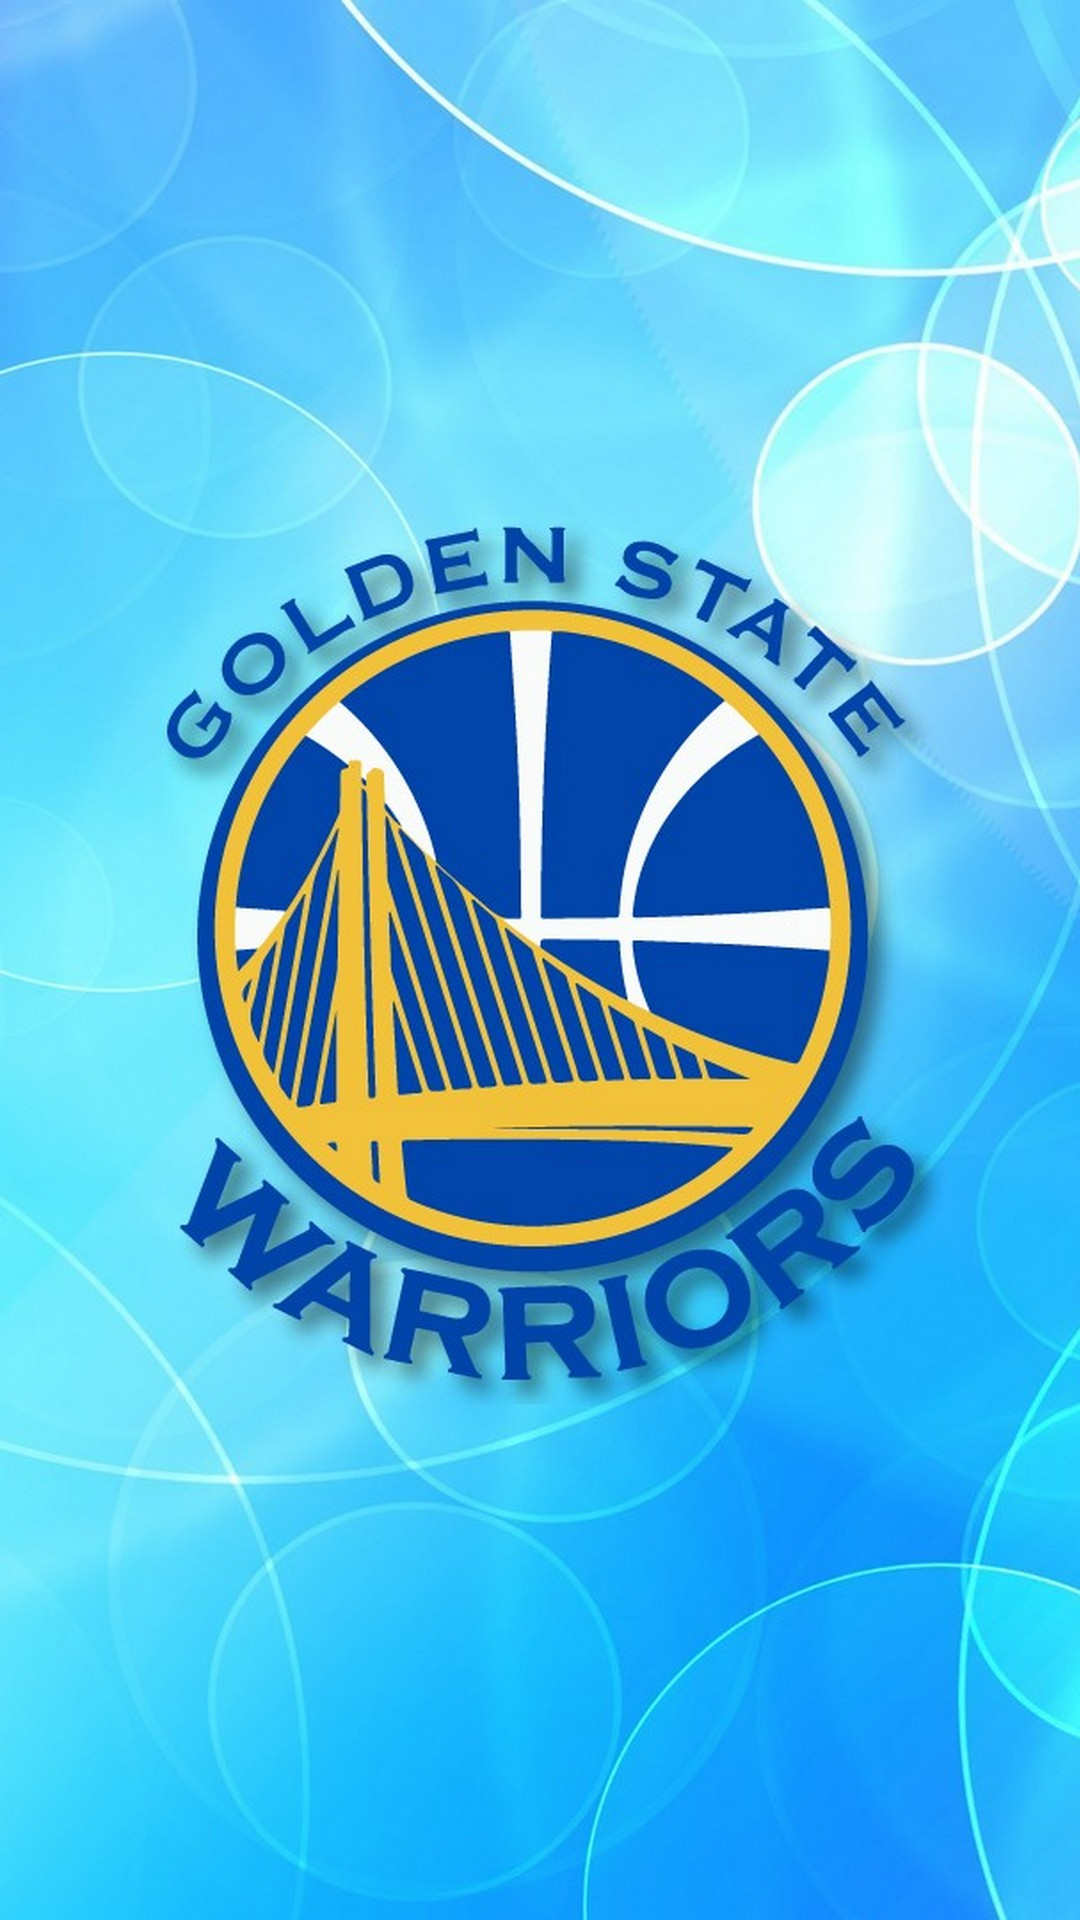 Golden State Warriors Wallpaper For Android with image resolution 1080x1920 pixel. You can make this wallpaper for your Android backgrounds, Tablet, Smartphones Screensavers and Mobile Phone Lock Screen